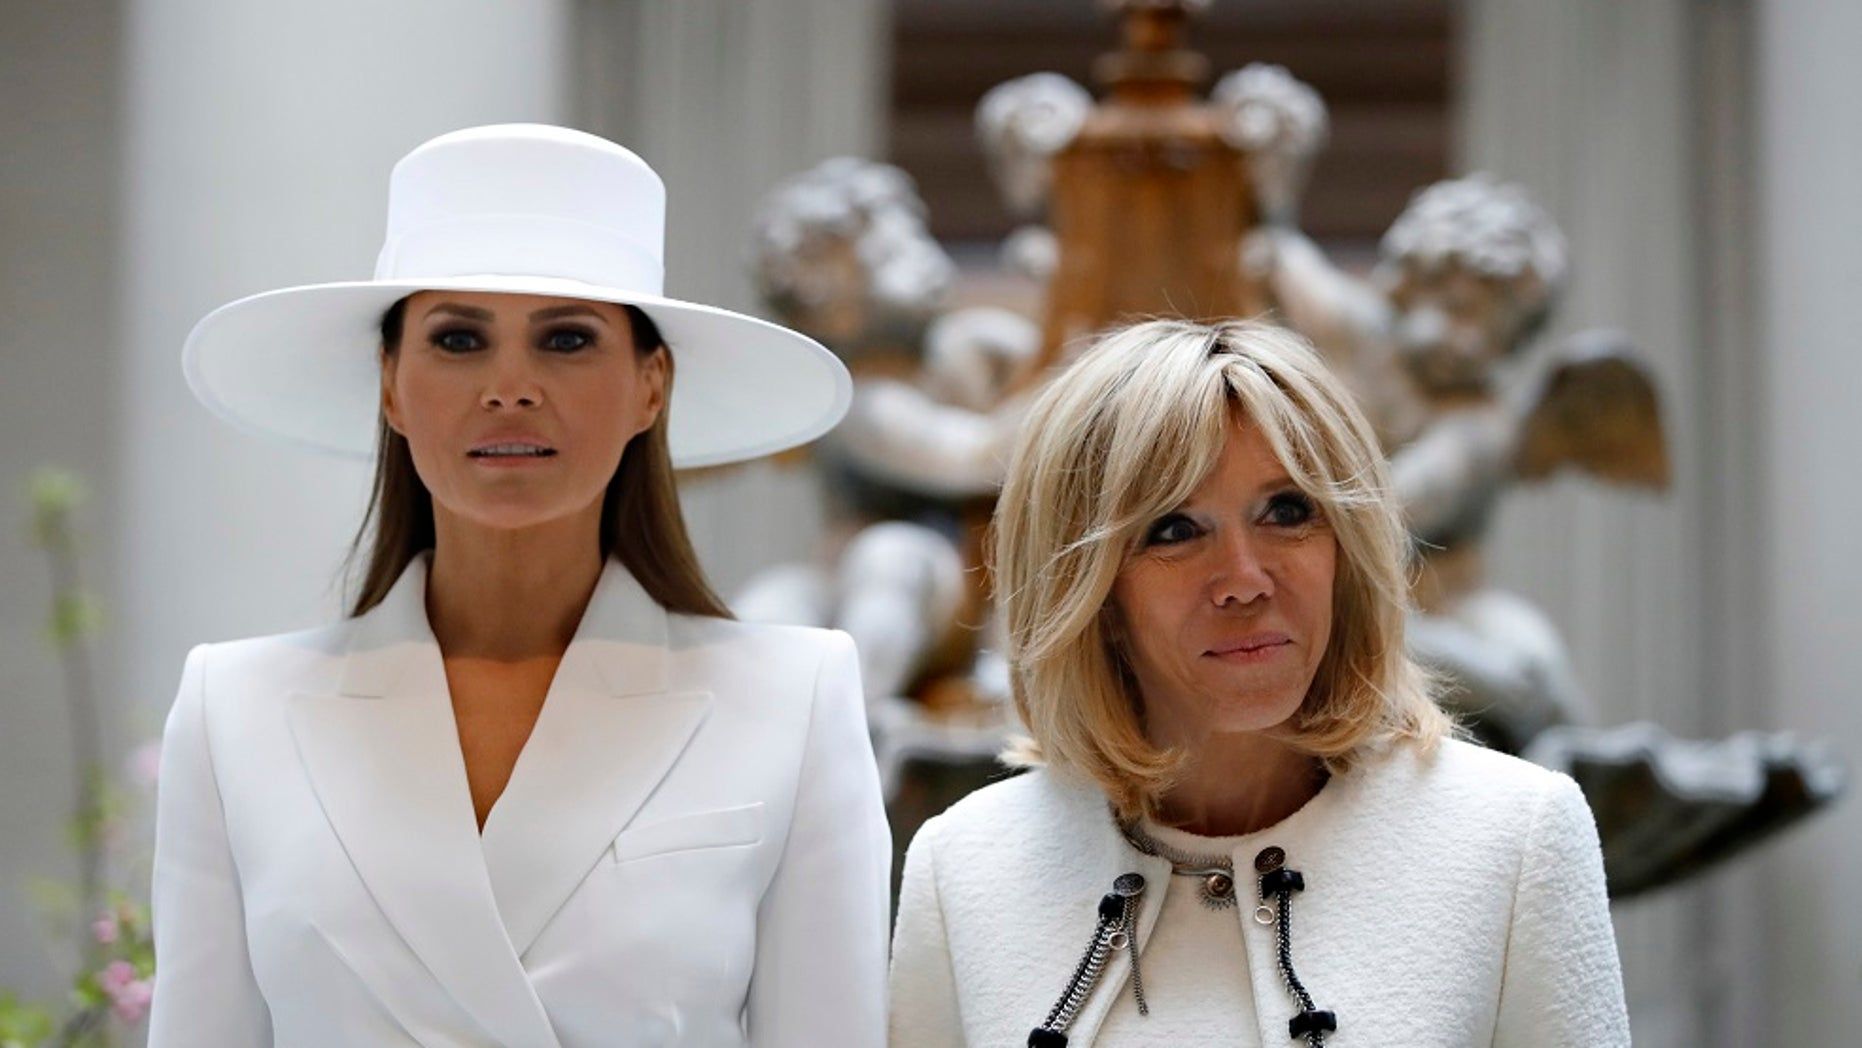 Brigitte Macron feels first lady Melania Trump is constrained in the White House.